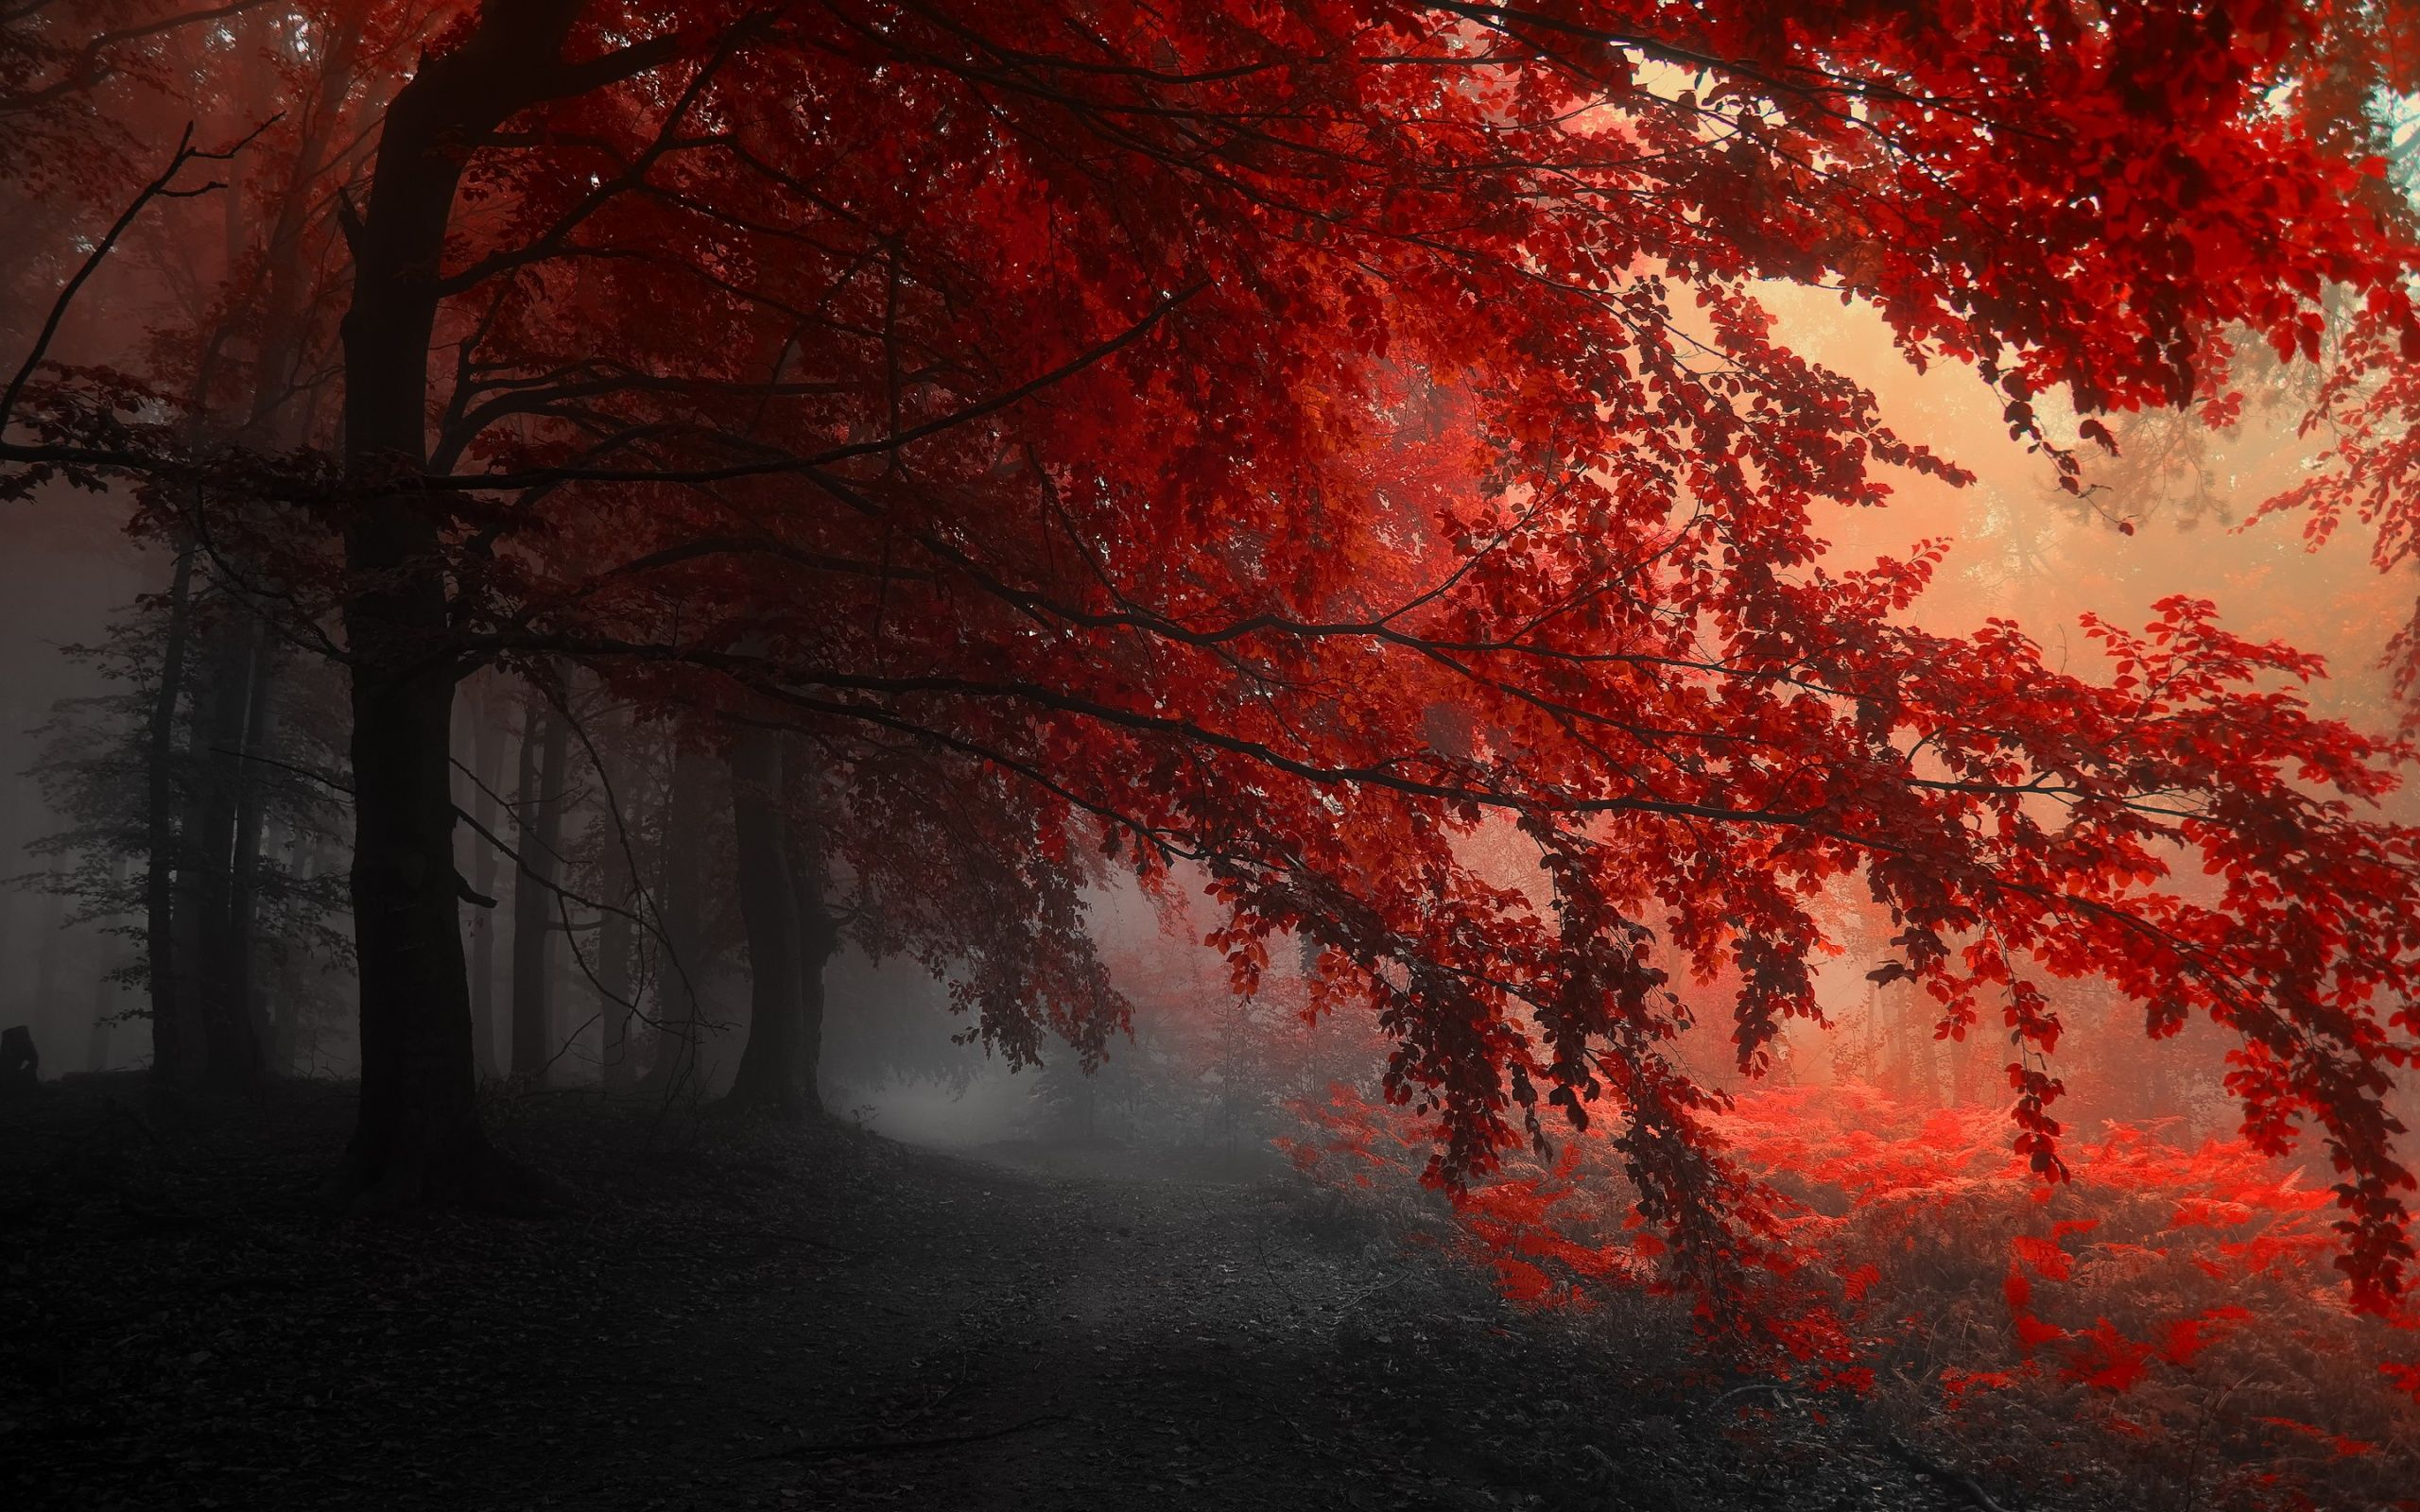 Red Forest Autumn Wallpaper Hd Dekstop 7056 Backgrounds